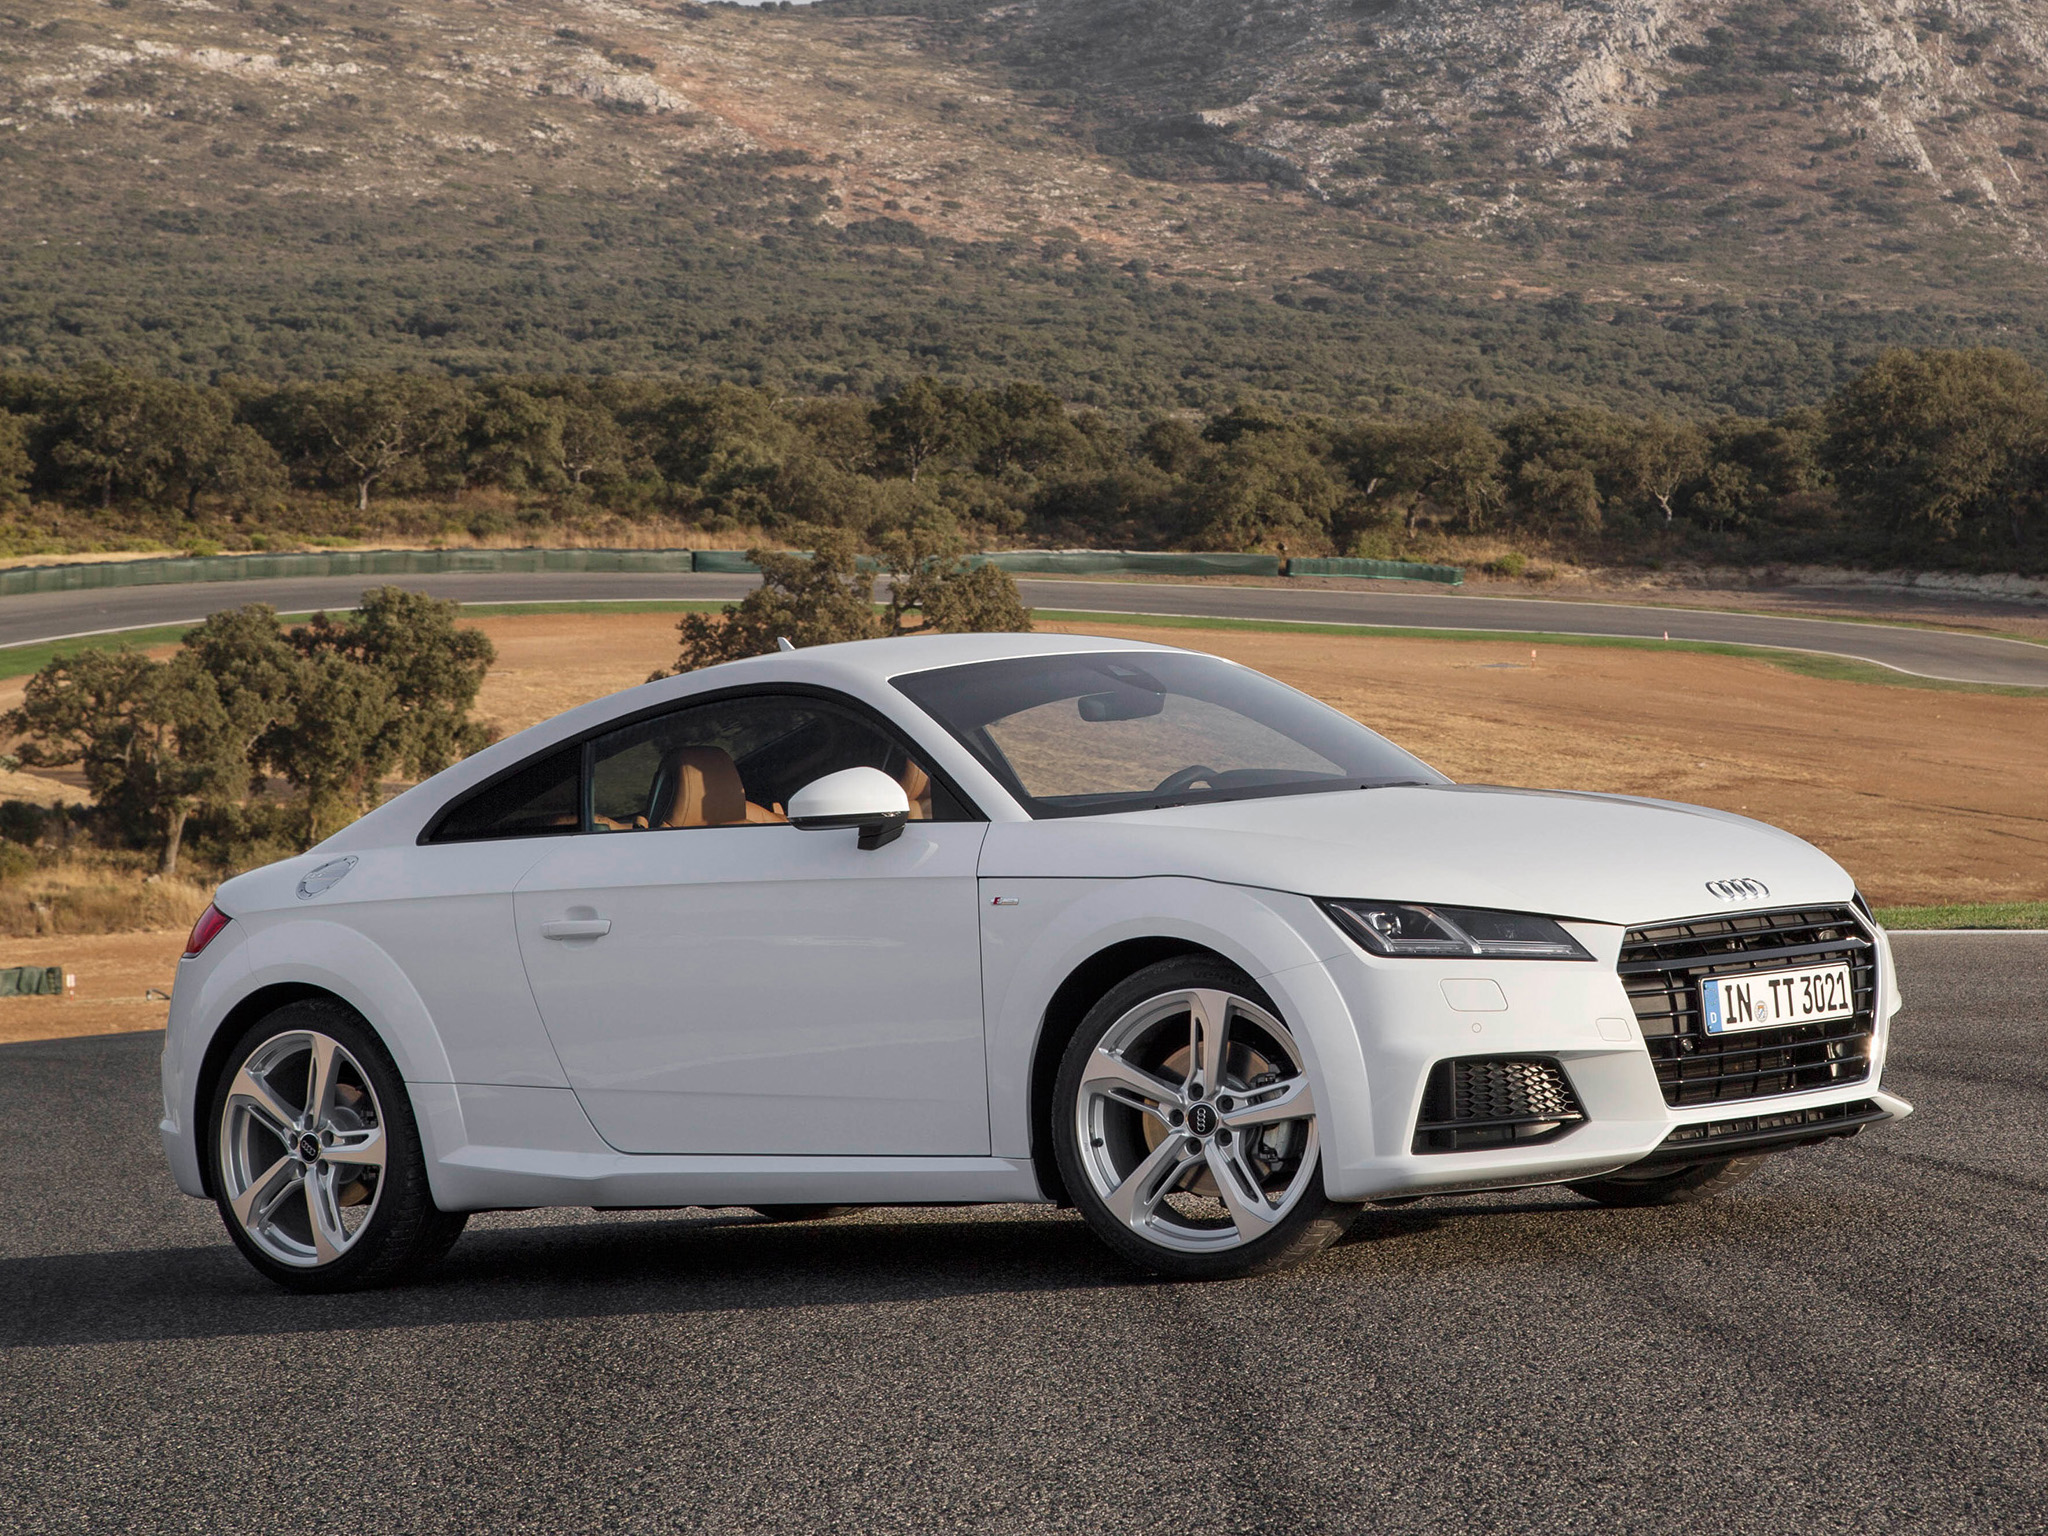 HP Audi TTS Coupe Prices And New Details Revealed Autoevolution - Audi car details and price